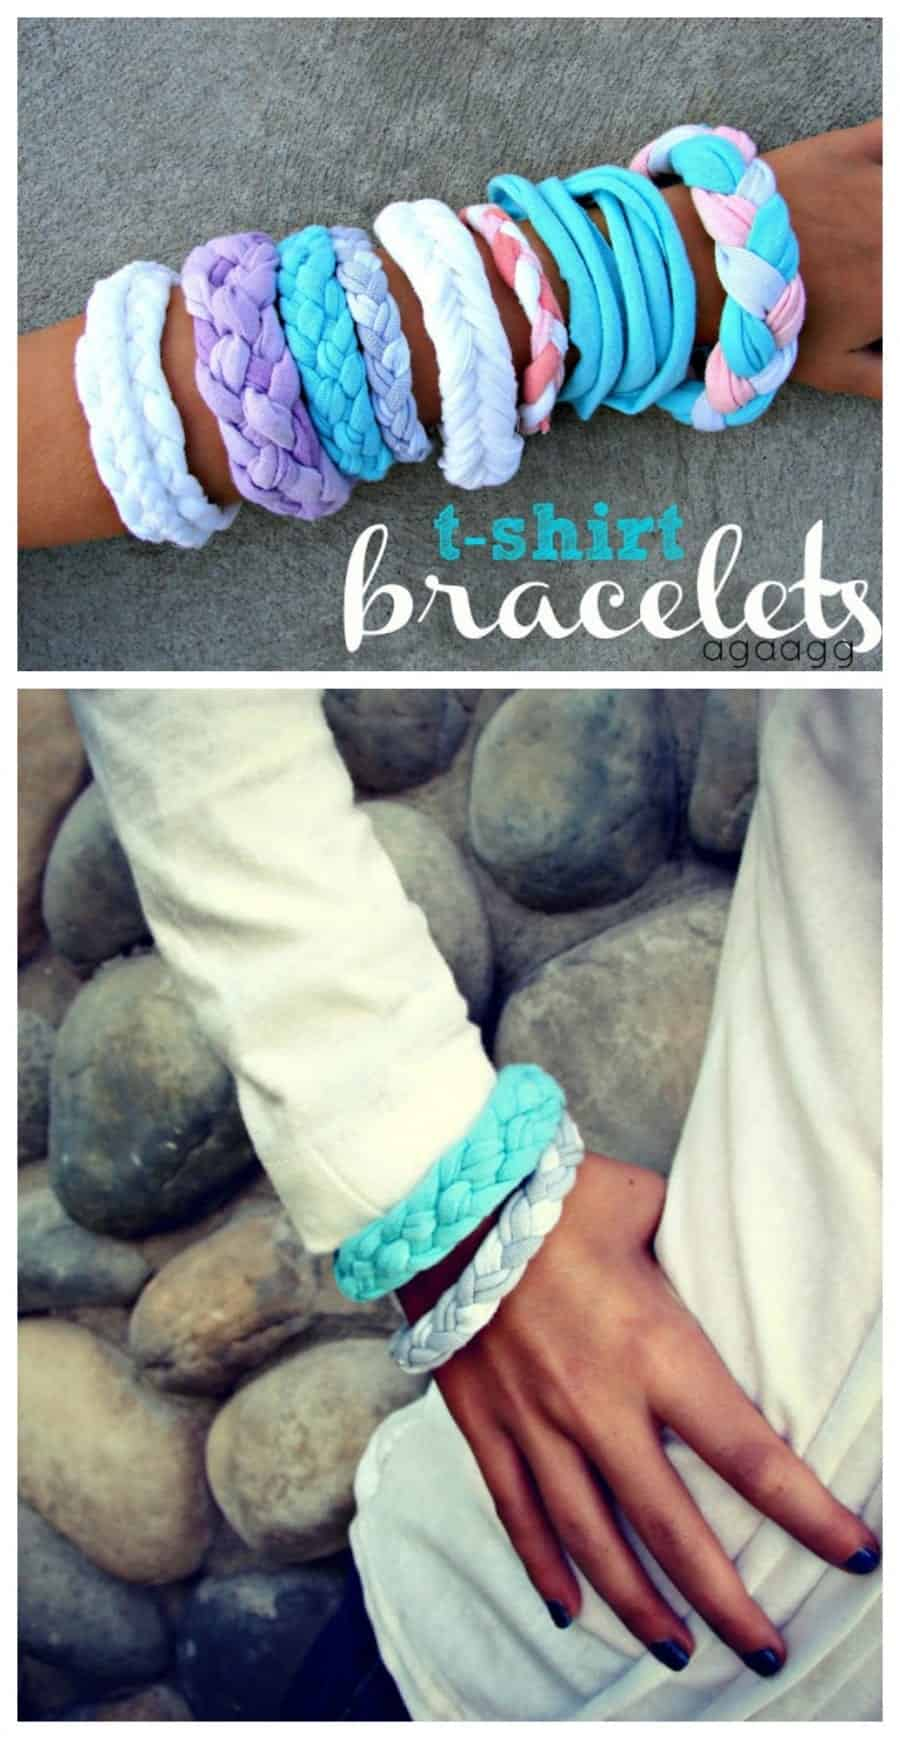 t-shirt bracelets 4 different ways